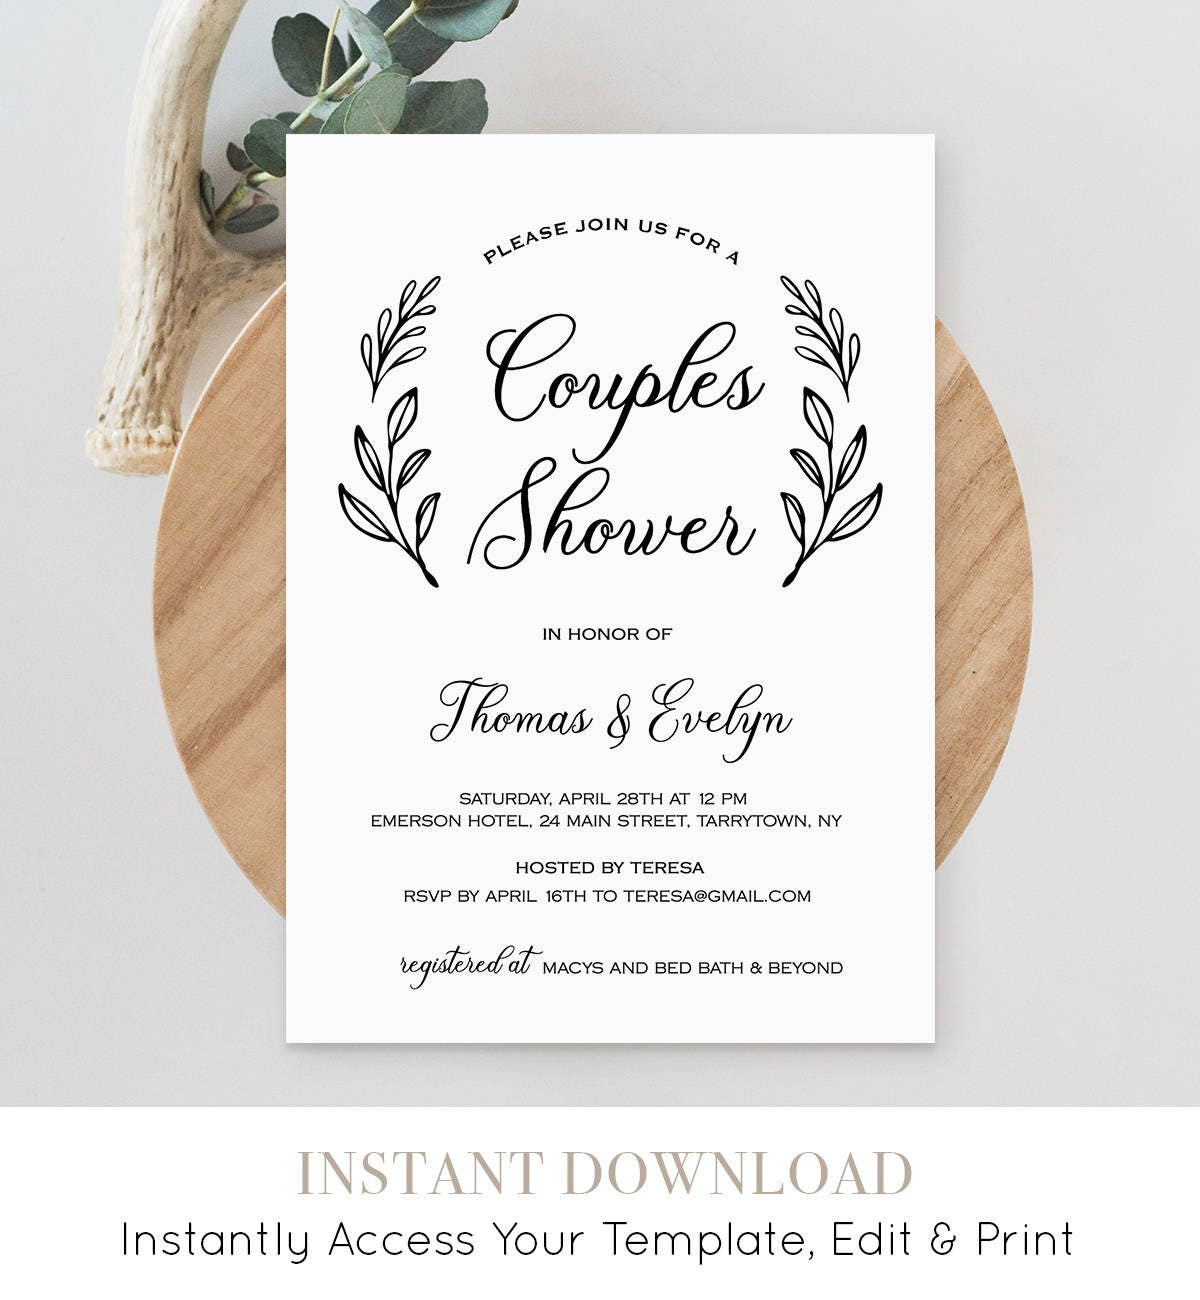 graphic about Printable Wedding Shower Invitations titled Partners Shower Invitation Template, Printable Marriage ceremony Shower Invite, Bridal Shower, Jack and Jill, Prompt Obtain, Editable #027-124BS